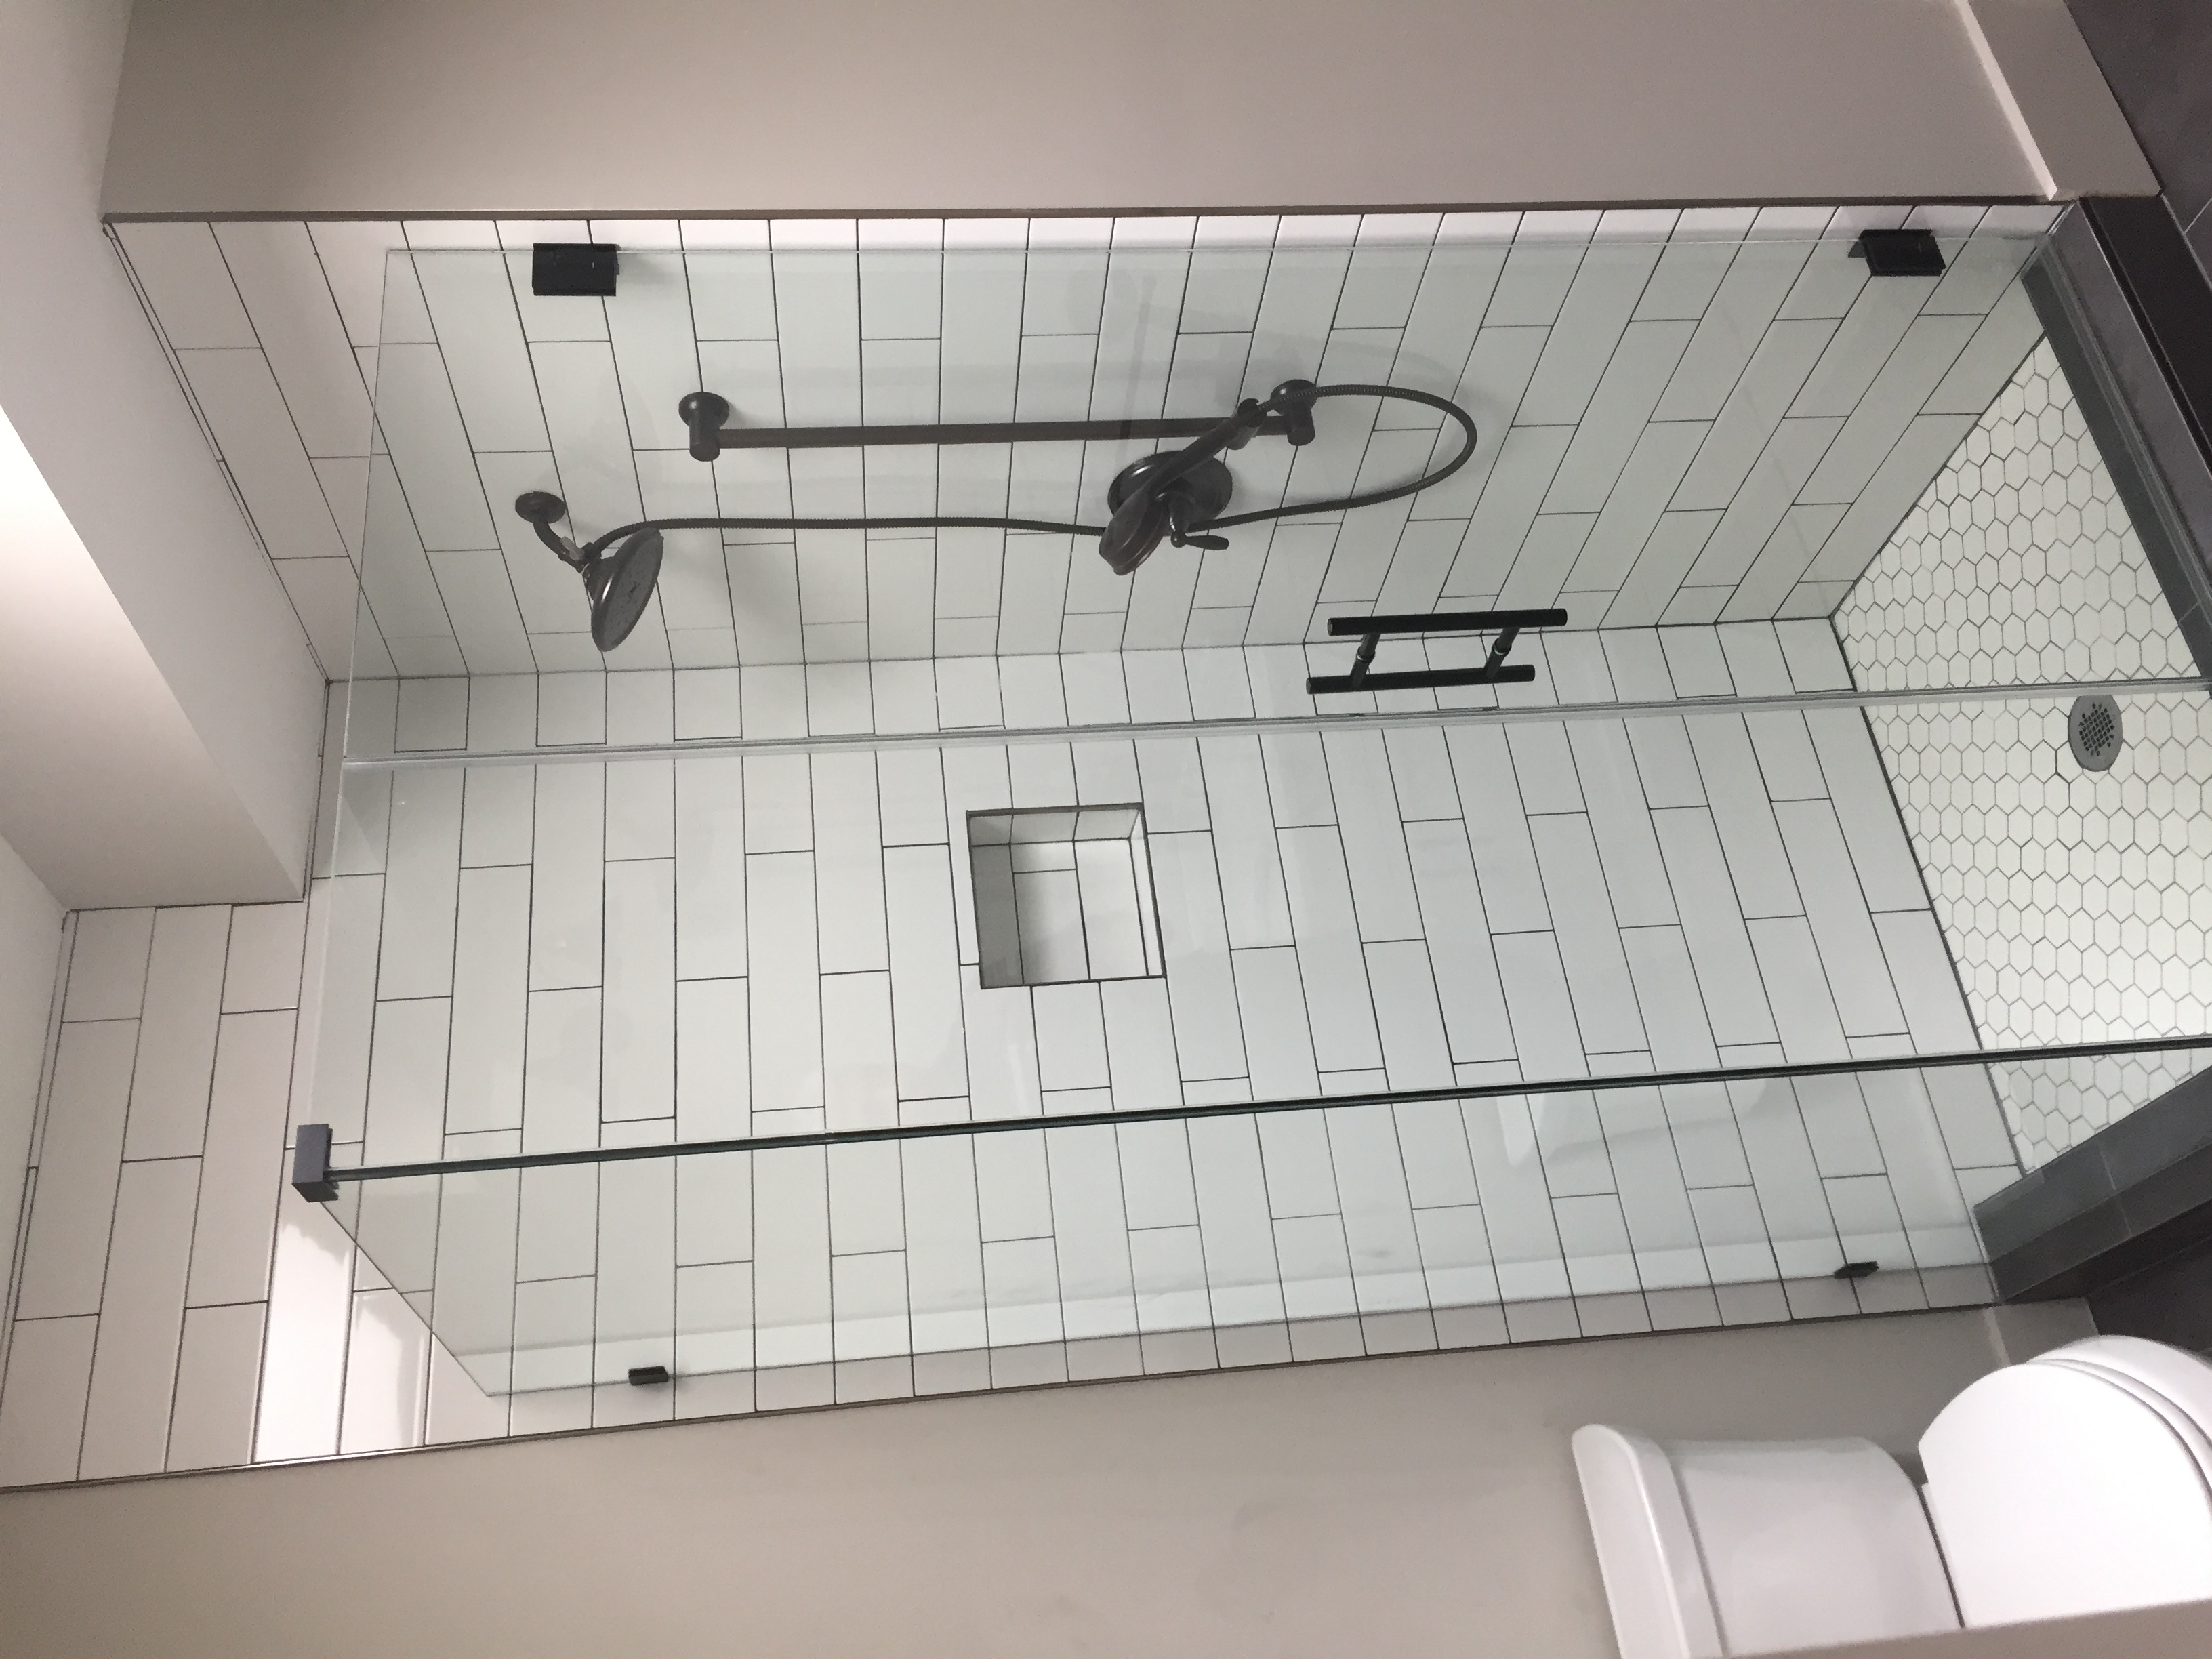 A Frameless 90 degrees shower enclosure in Dc MD VA dmv US